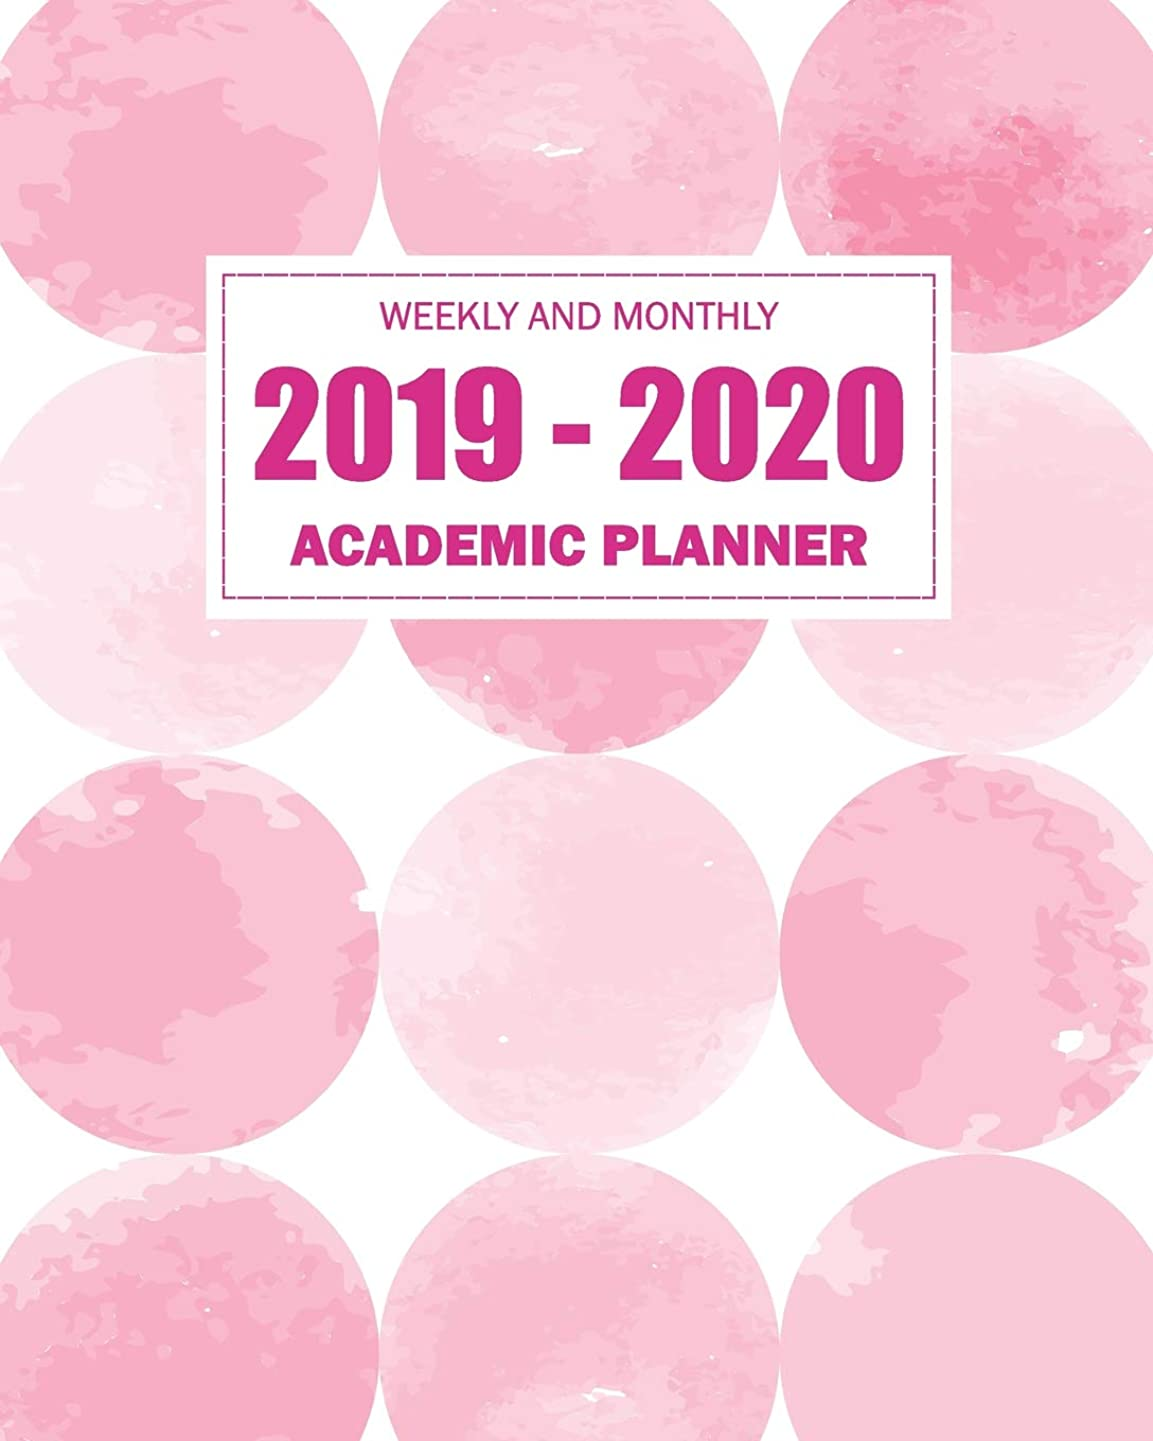 メディックギャロップ記念日2019-2020 Academic Planner Weekly And Monthly: Weekly calendar academic year July 2019-June 2020 college student appointment book planner (July 2019 - June 2020 Academic calendar)